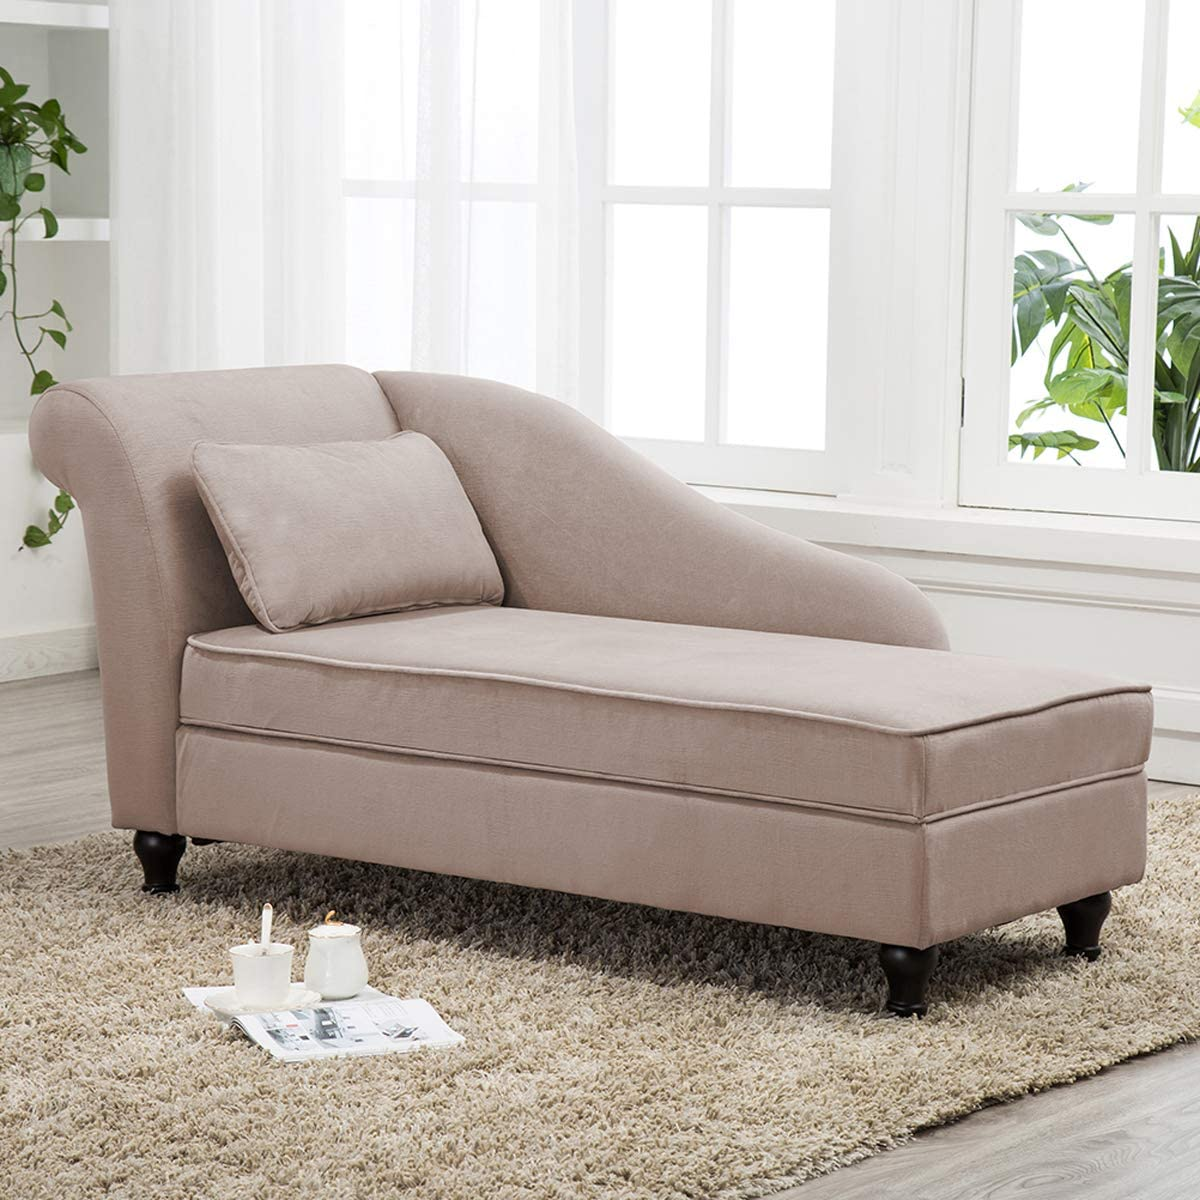 Storage Chaise Lounge Indoor Upholstered Chaise Lounger for Bedroom Living  Room Tan Fabric (Left Armrest)